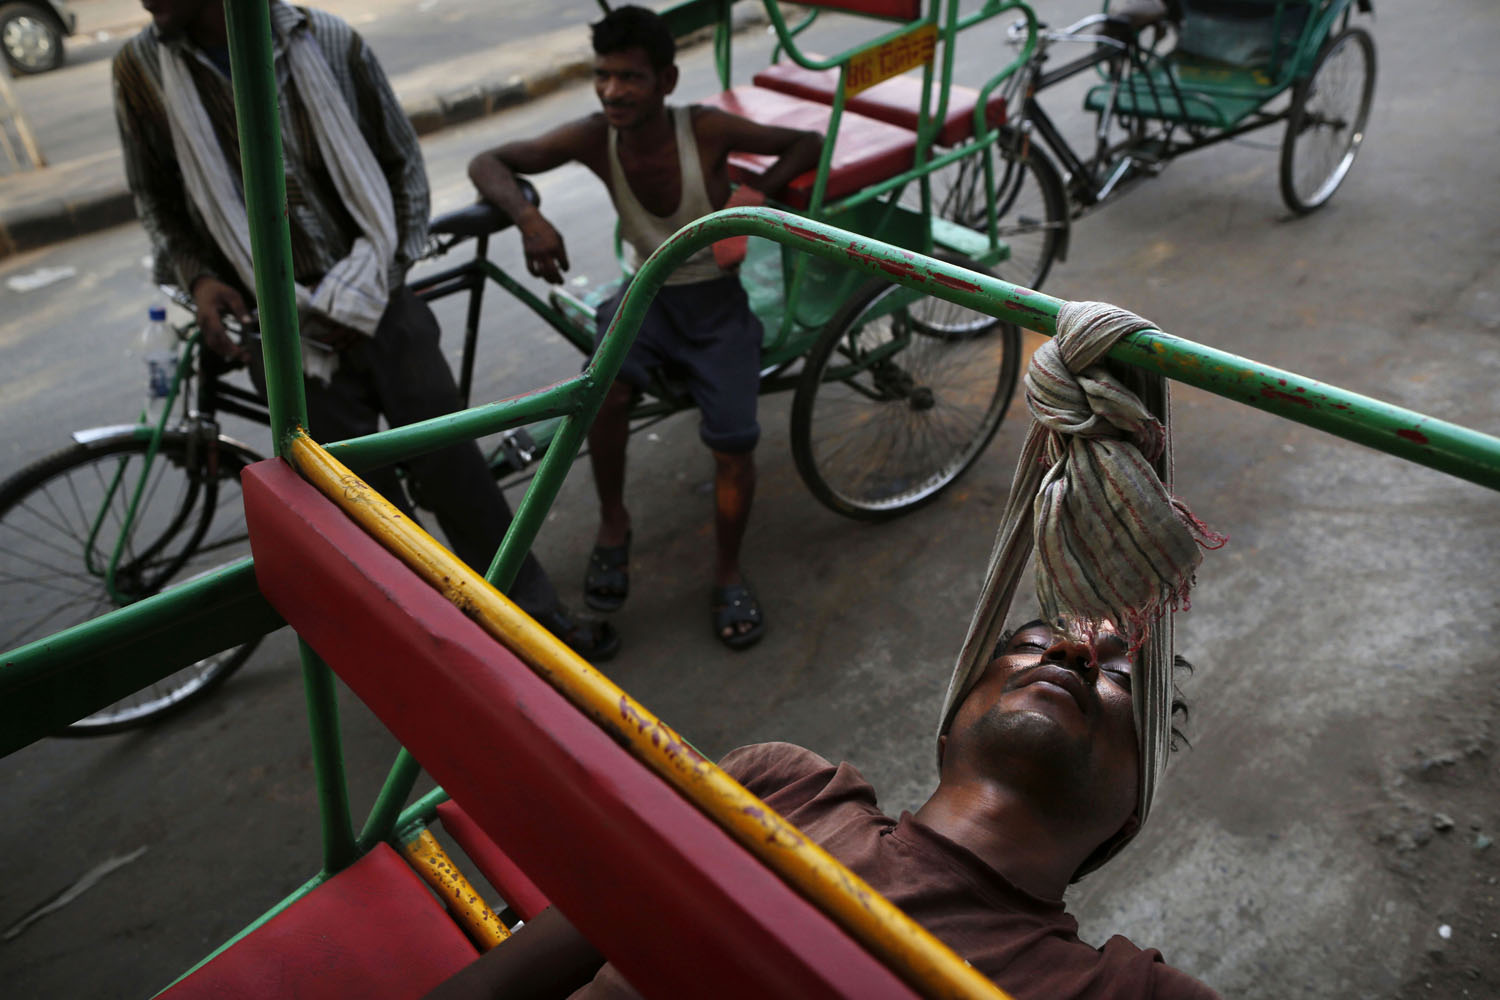 June 6, 2013. An Indian bicycle rickshaw walla uses a scarf to rest his head while sleeping on his rickshaw in New Delhi.